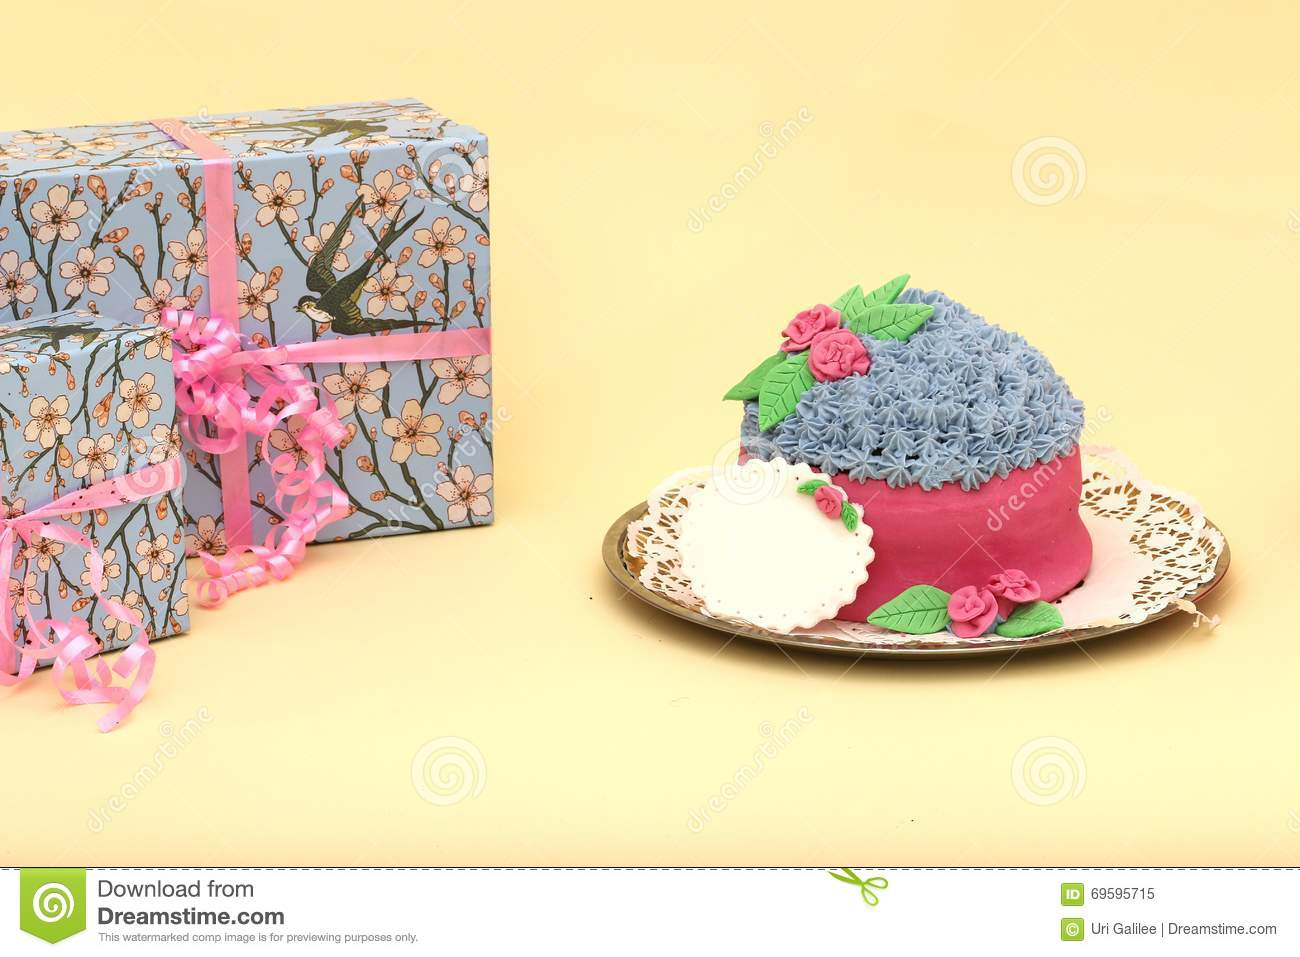 Smashed Cake Clipart : Cake Smash Shoot: Oh Dear! Baby Girl And Big Messy Royalty ...